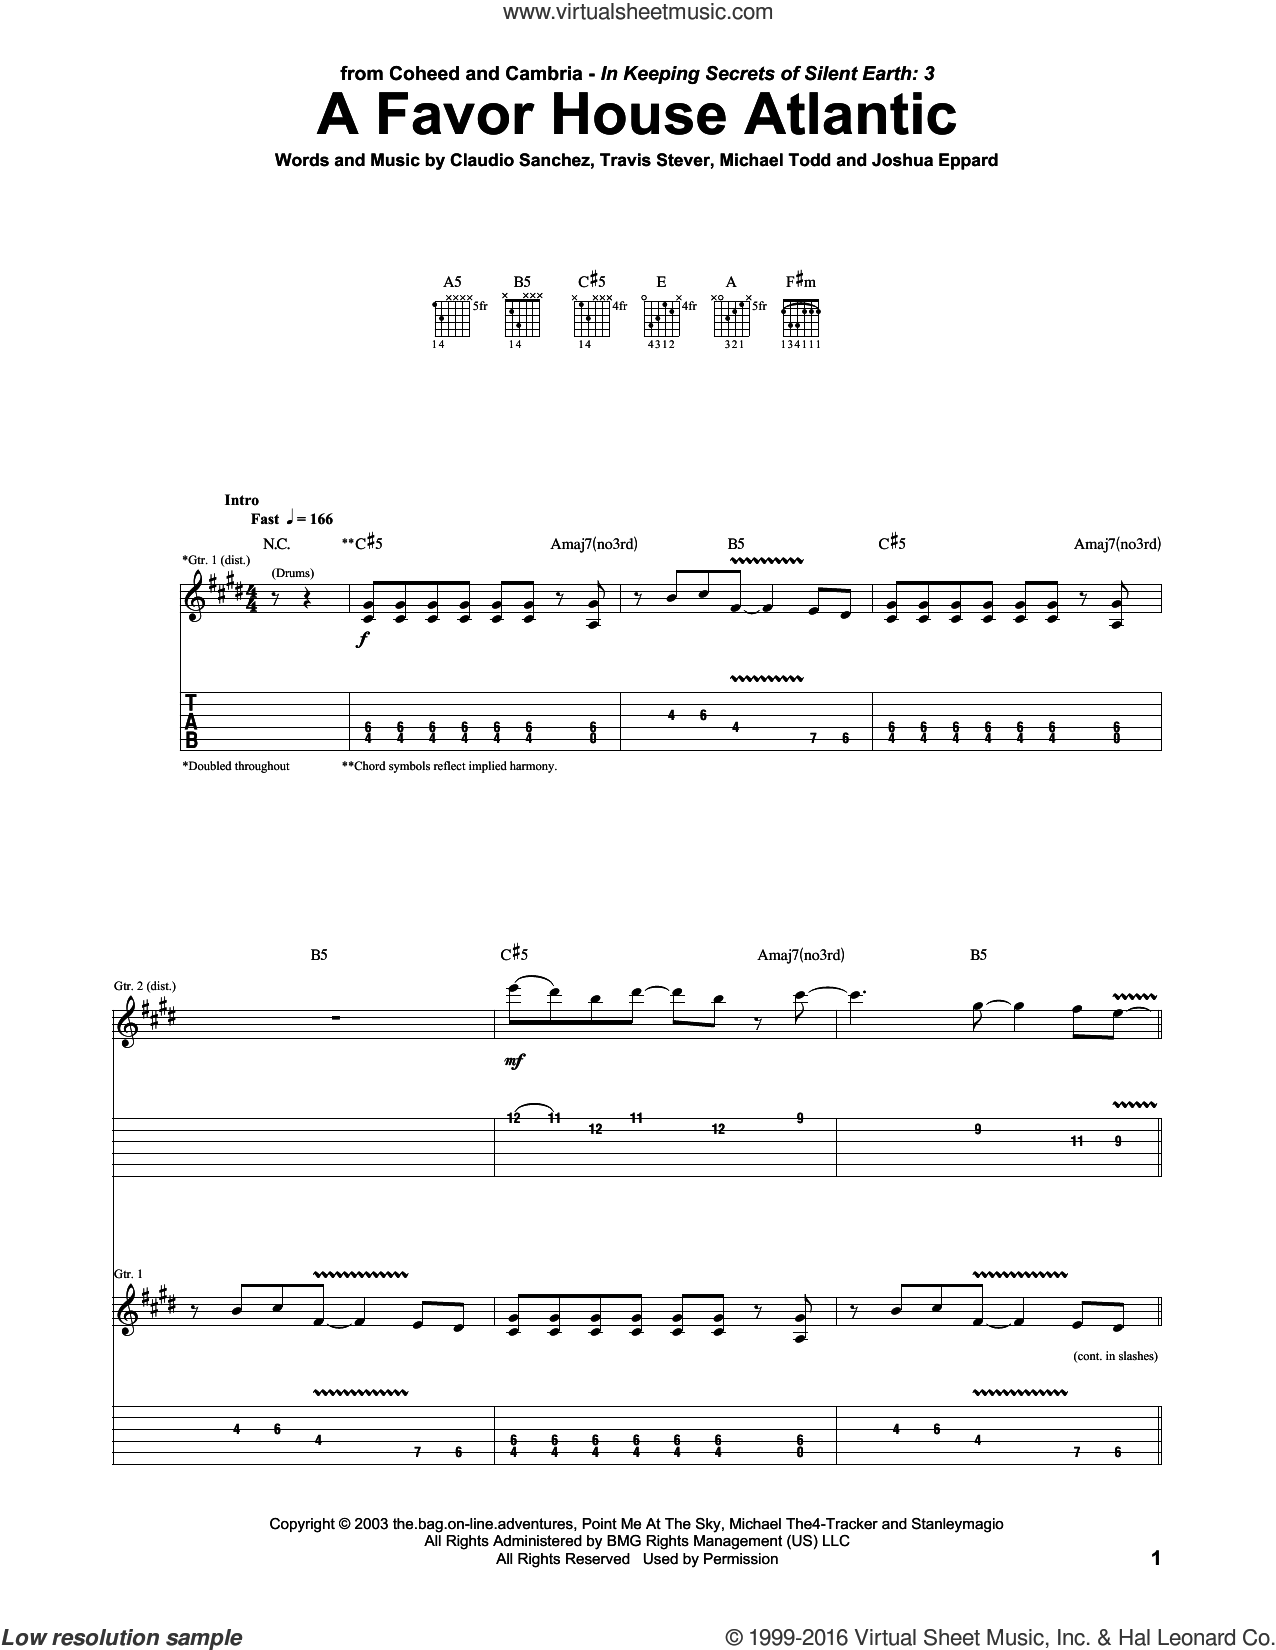 A Favor House Atlantic sheet music for guitar (tablature) by Travis Stever, Claudio Sanchez and Joshua Eppard. Score Image Preview.